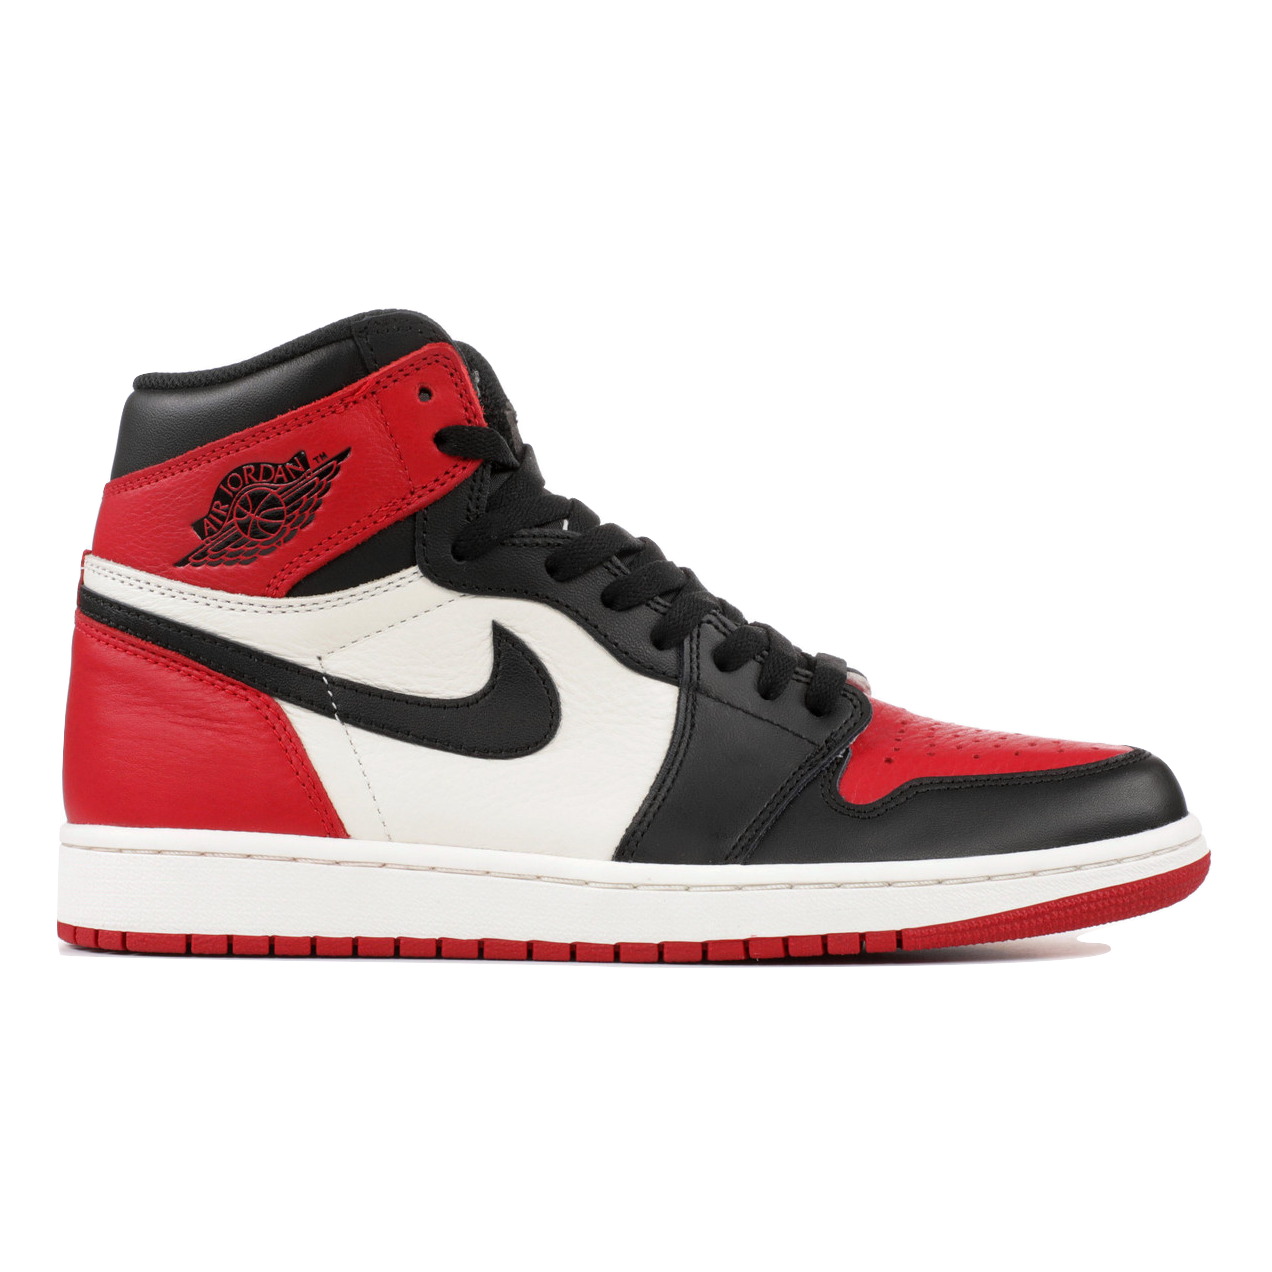 Air Jordan 1 Retro High OG - Bred Toe